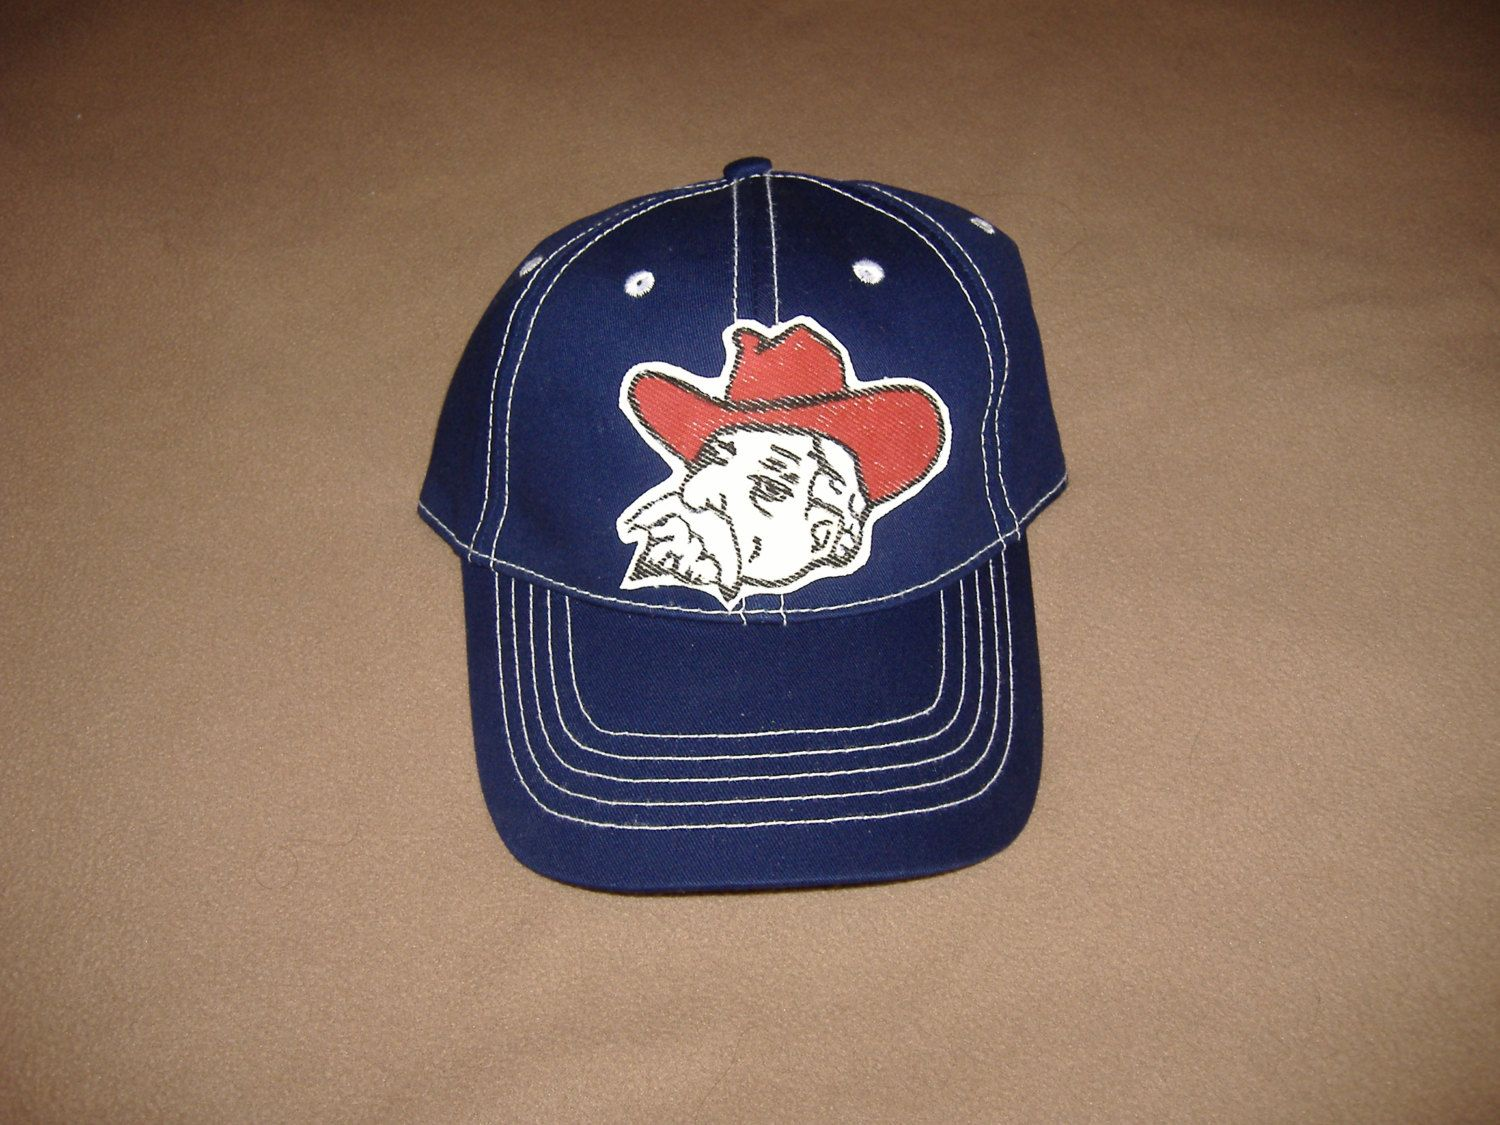 Ole Miss Colonel Reb hat, new unisex adjustable size hat